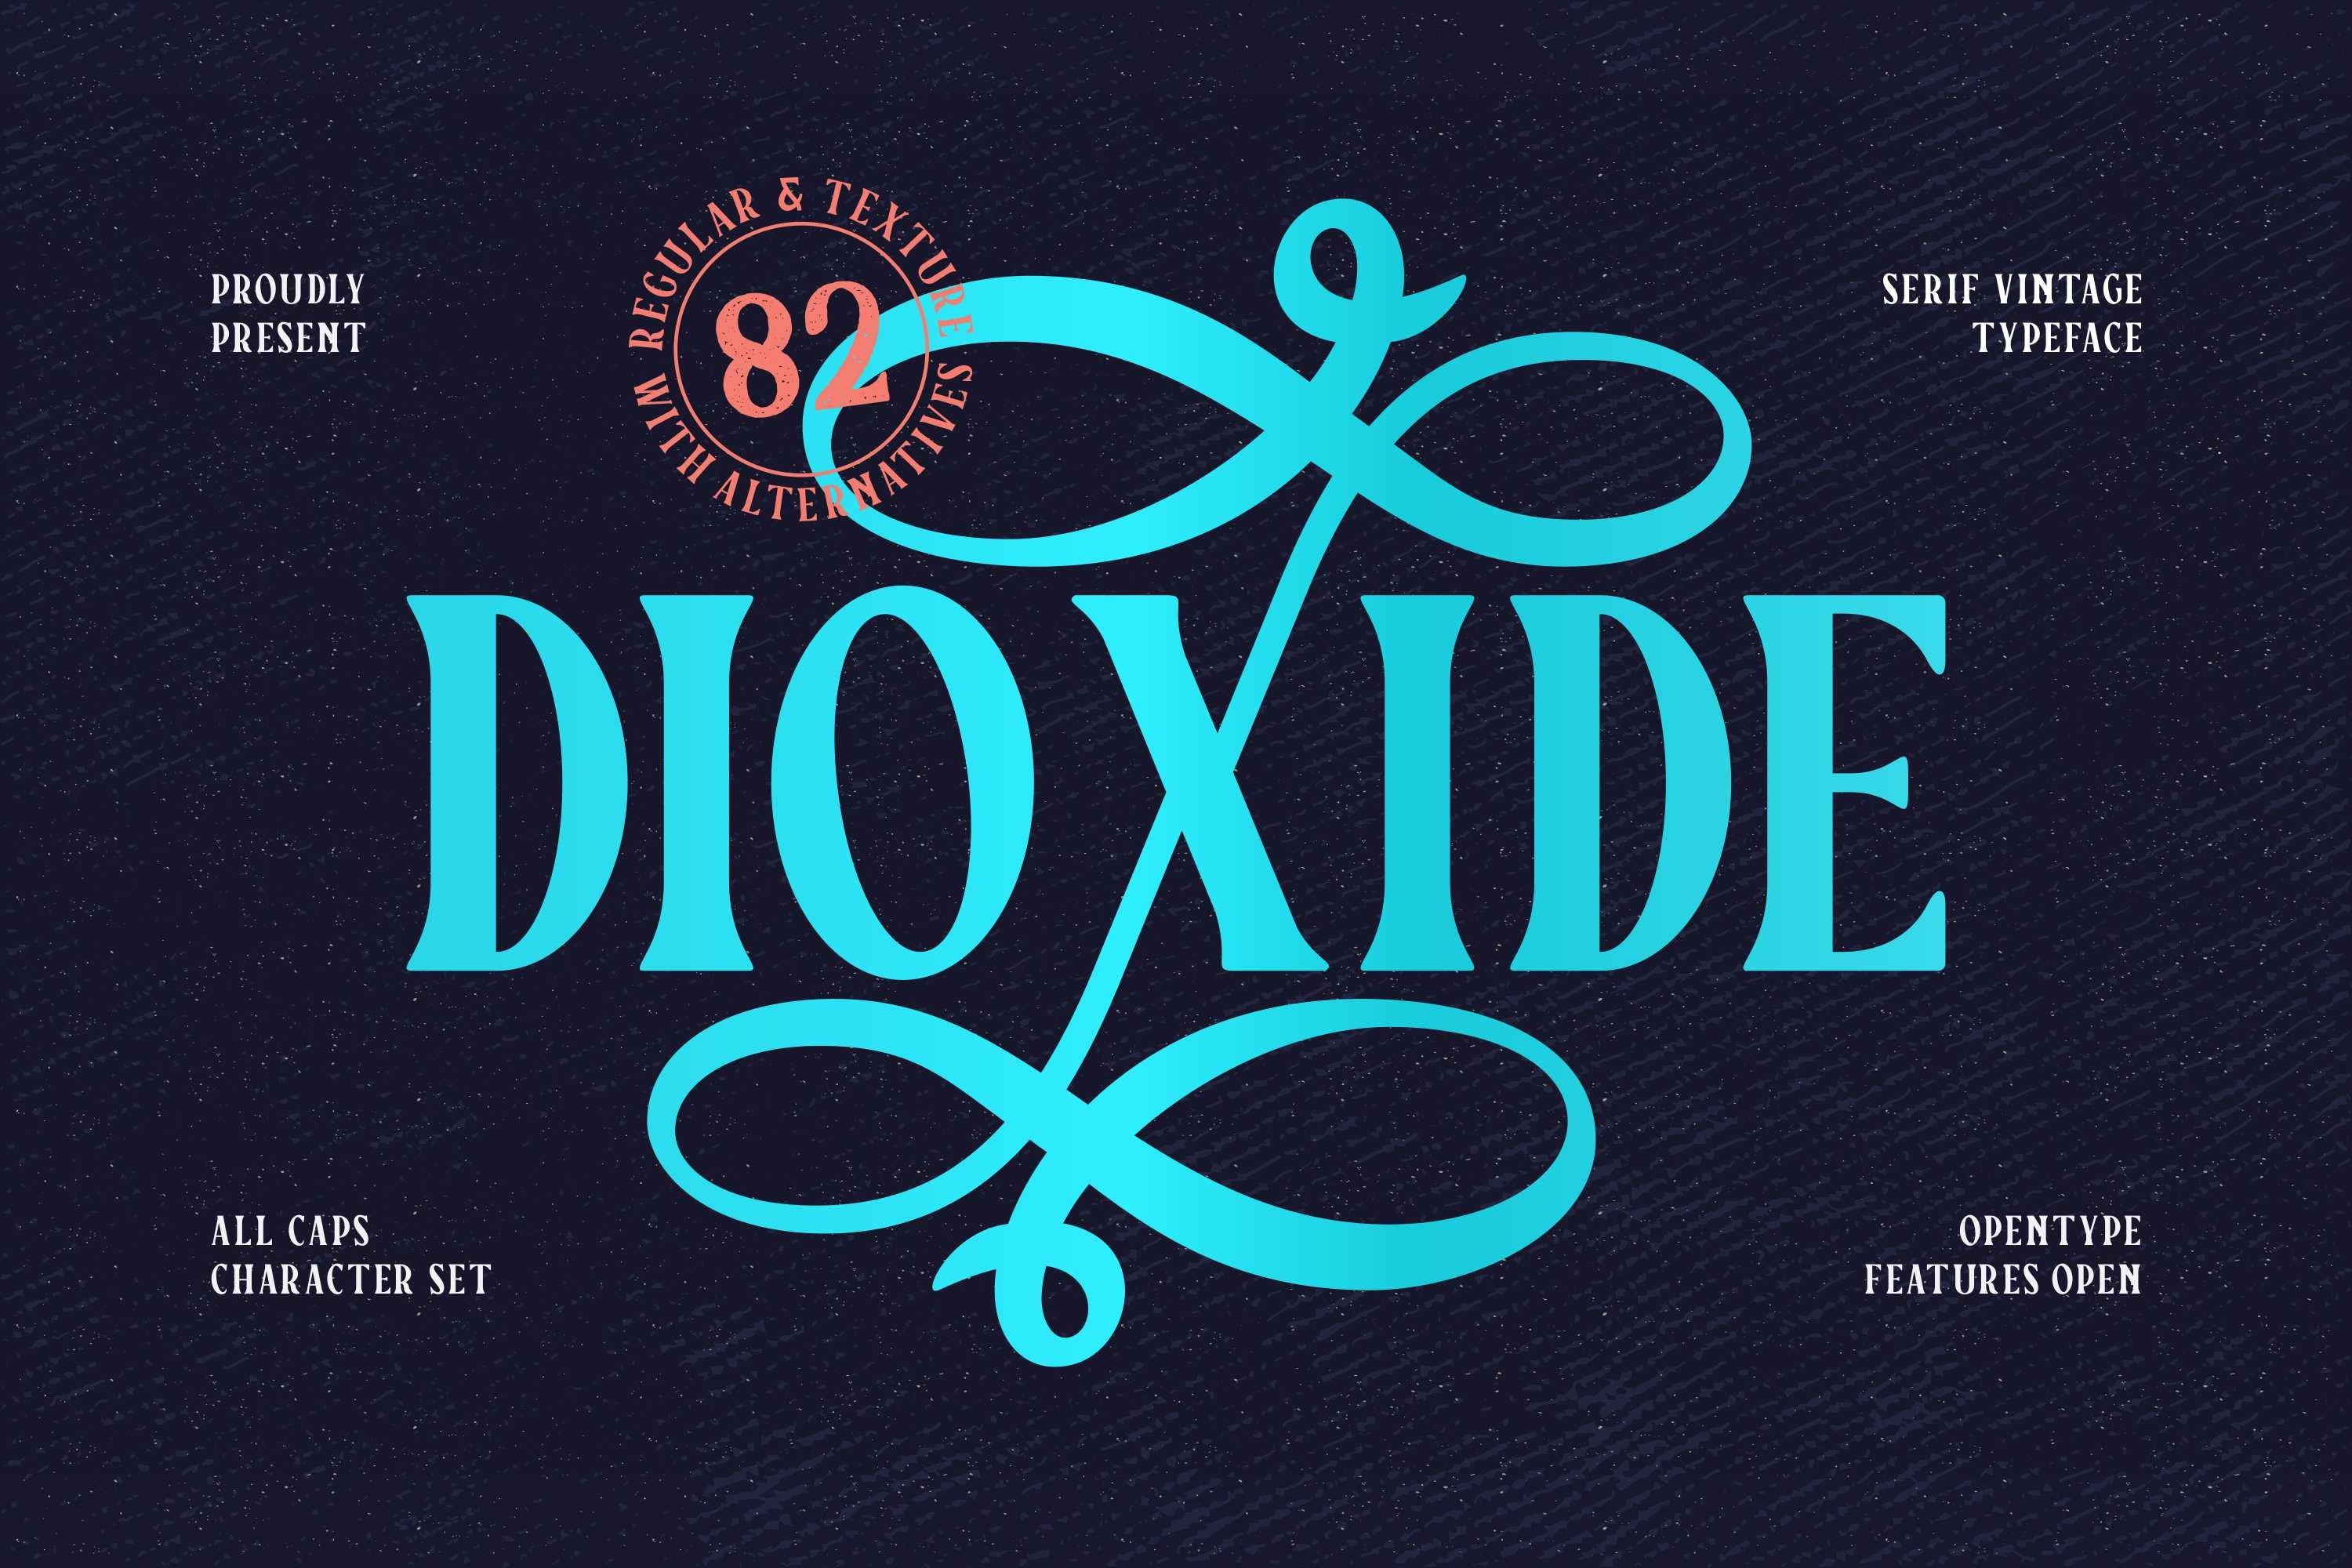 Dioxide - Vintage Typeface example image 1